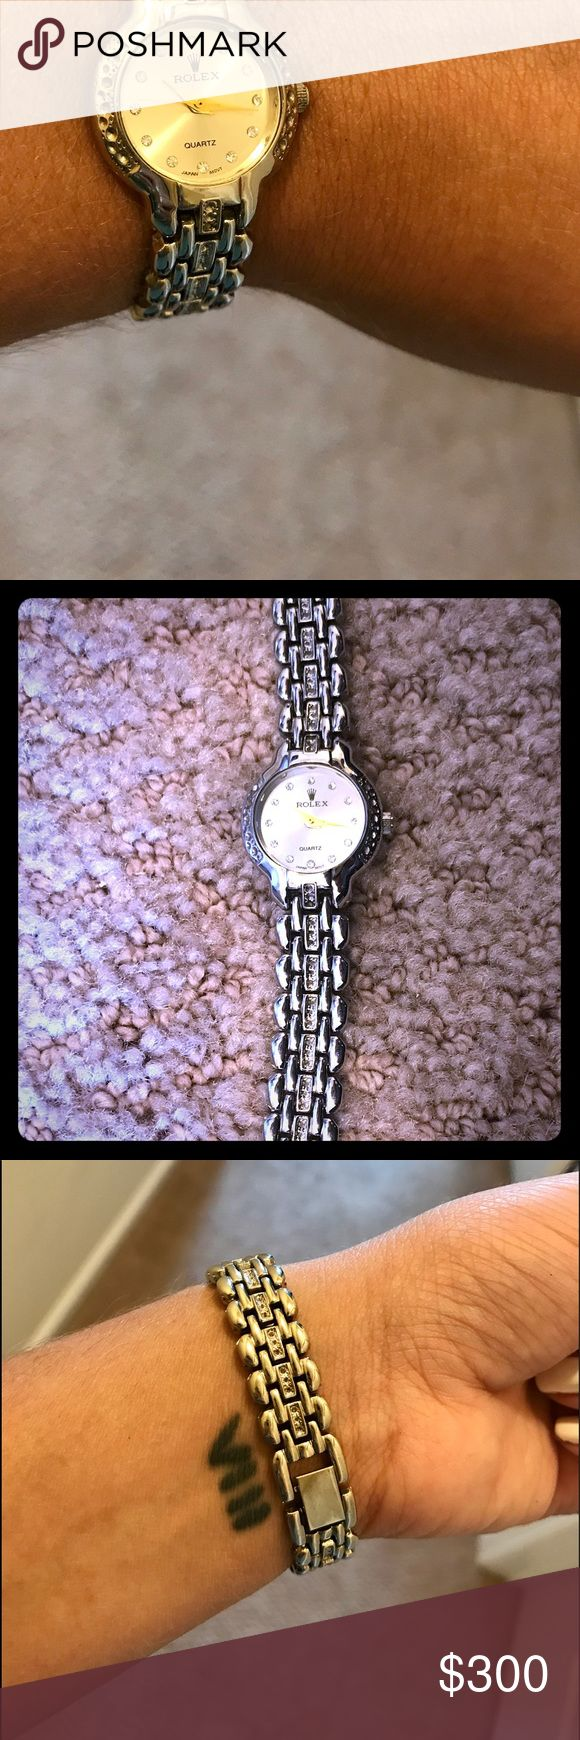 Women's Rolex watch in excellent condition! ✨ Absolutely gorgeous watch that I love but never wear. IDENTICAL to the original. Has all Rolex markings. Looks stunning on and is a perfect mix of mostly silver with gold hands and CZ detailing. Clasps perfectly in the back just needs a battery ($5). Price is negotiable - make an offer! Rolex Accessories Watches